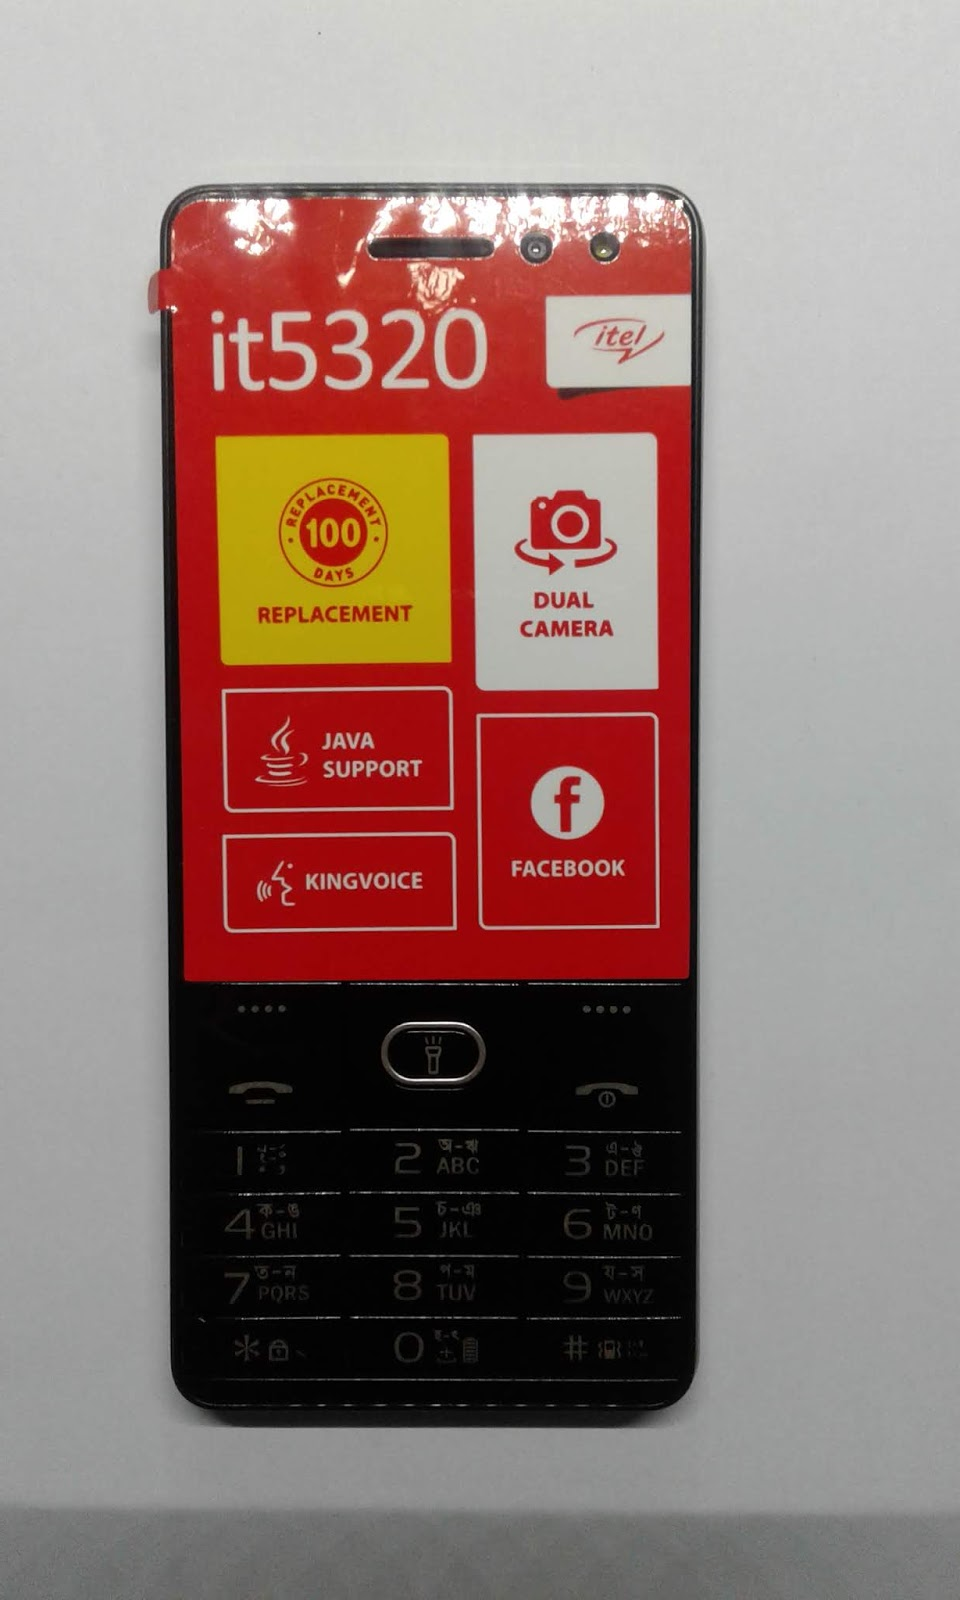 itel it5320 spd6561ca flash file without password - waiting